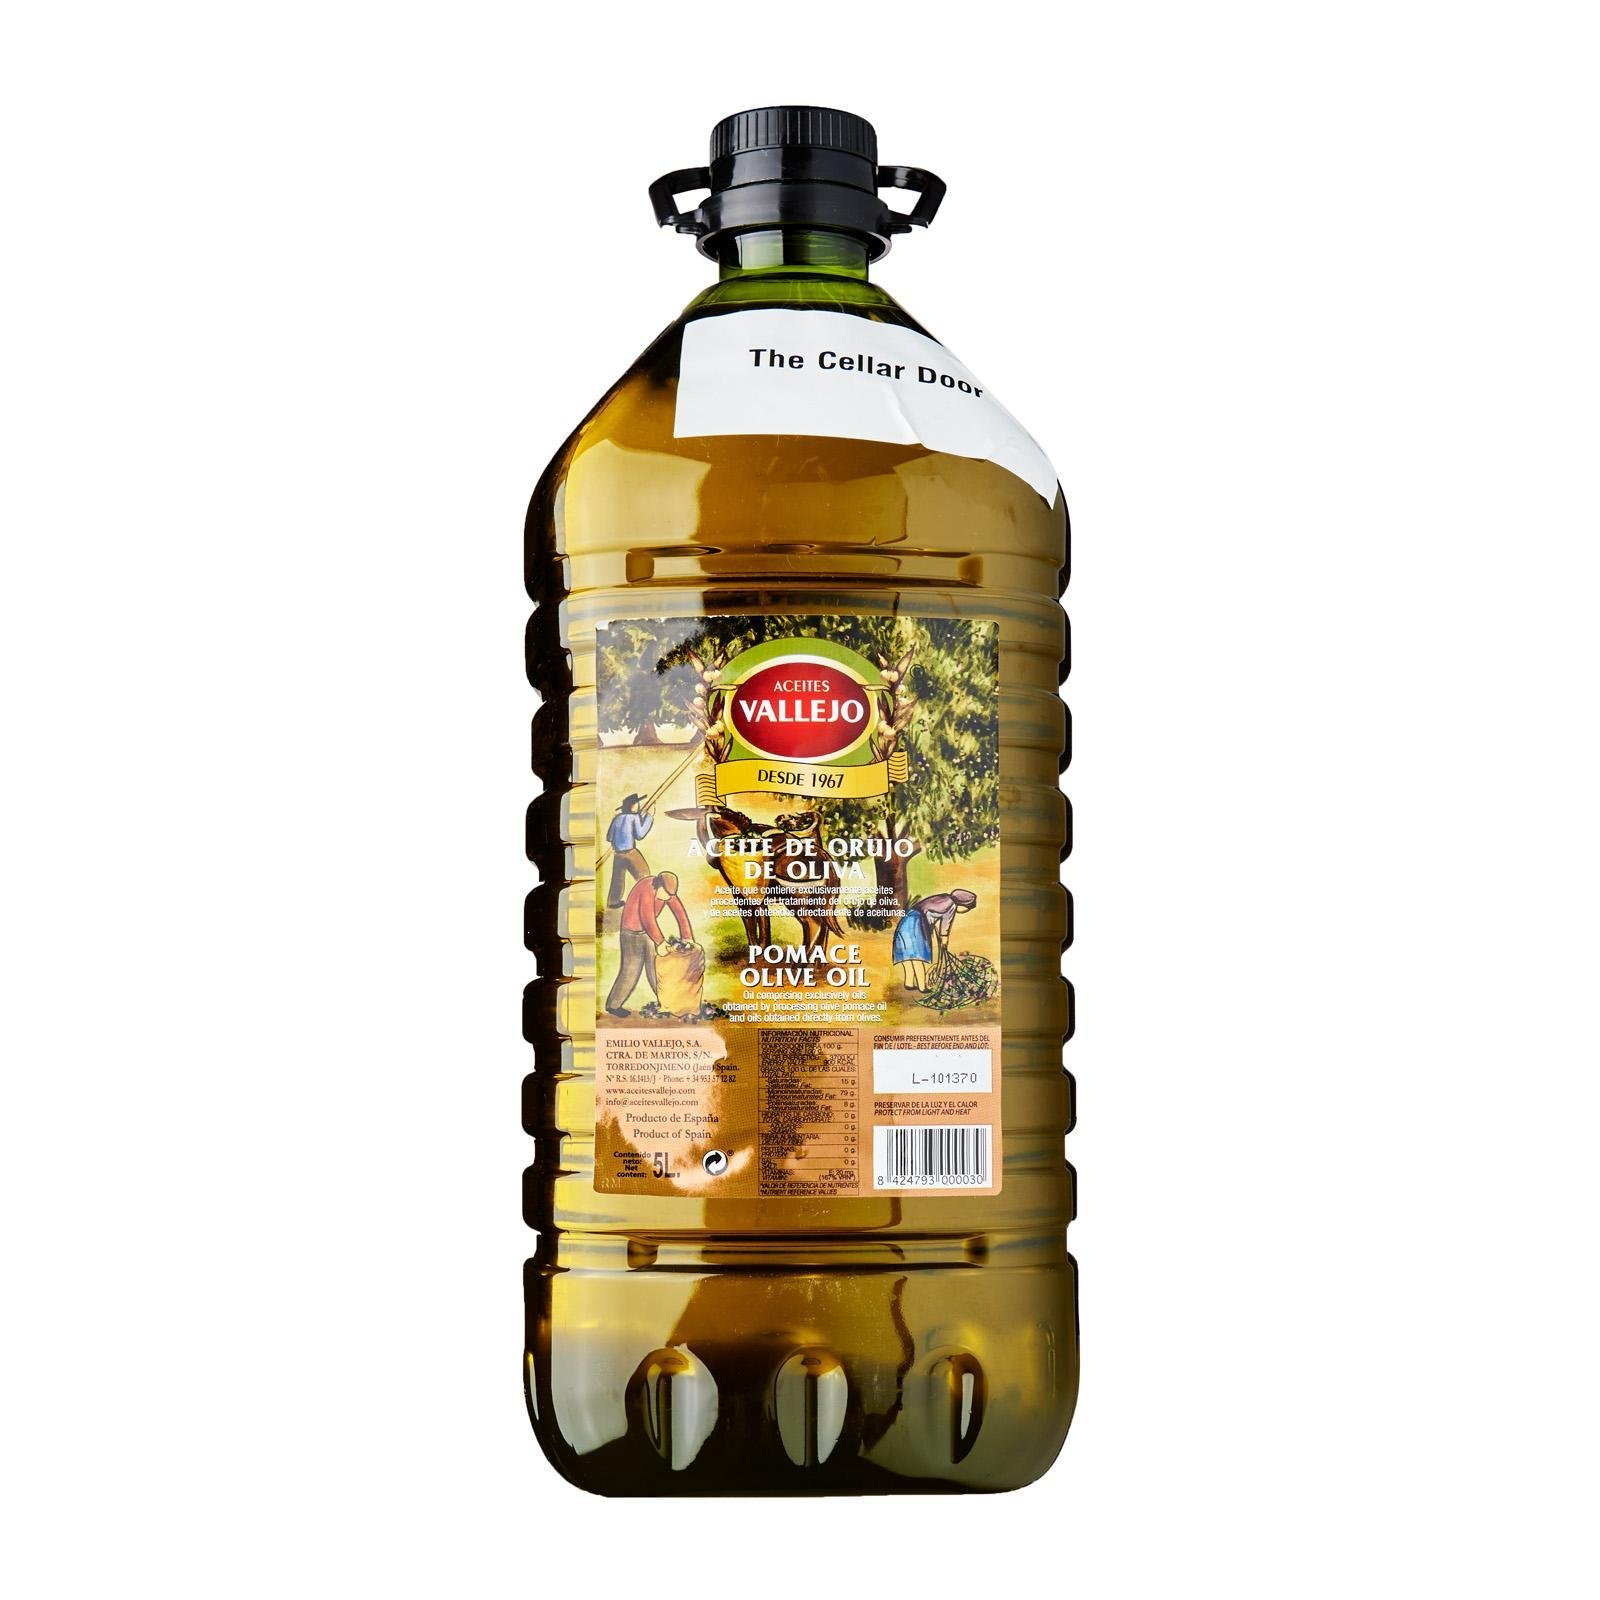 ACEITES VALLEJO POMACE OLIVE OIL 5L/PET